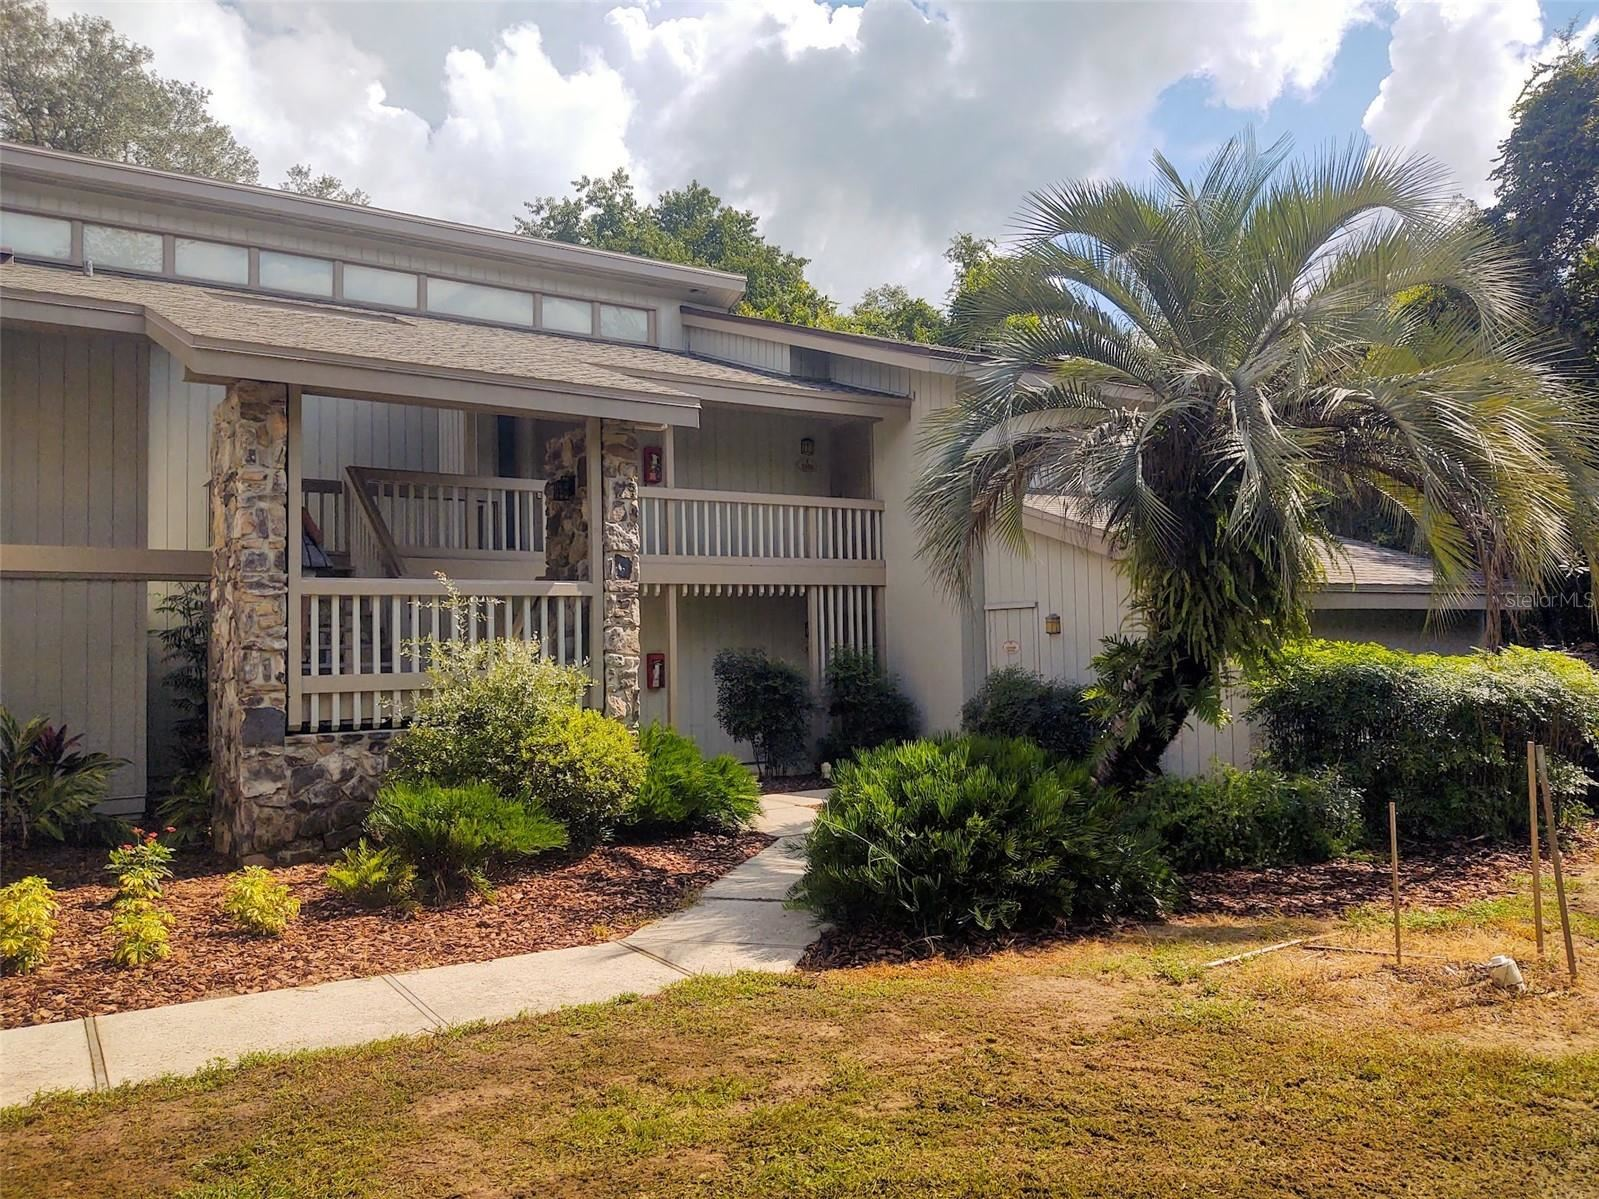 3352\/3353 CAMELOT DRIVE #3352\/3353, Haines City, FL 33844 - #: S5054319